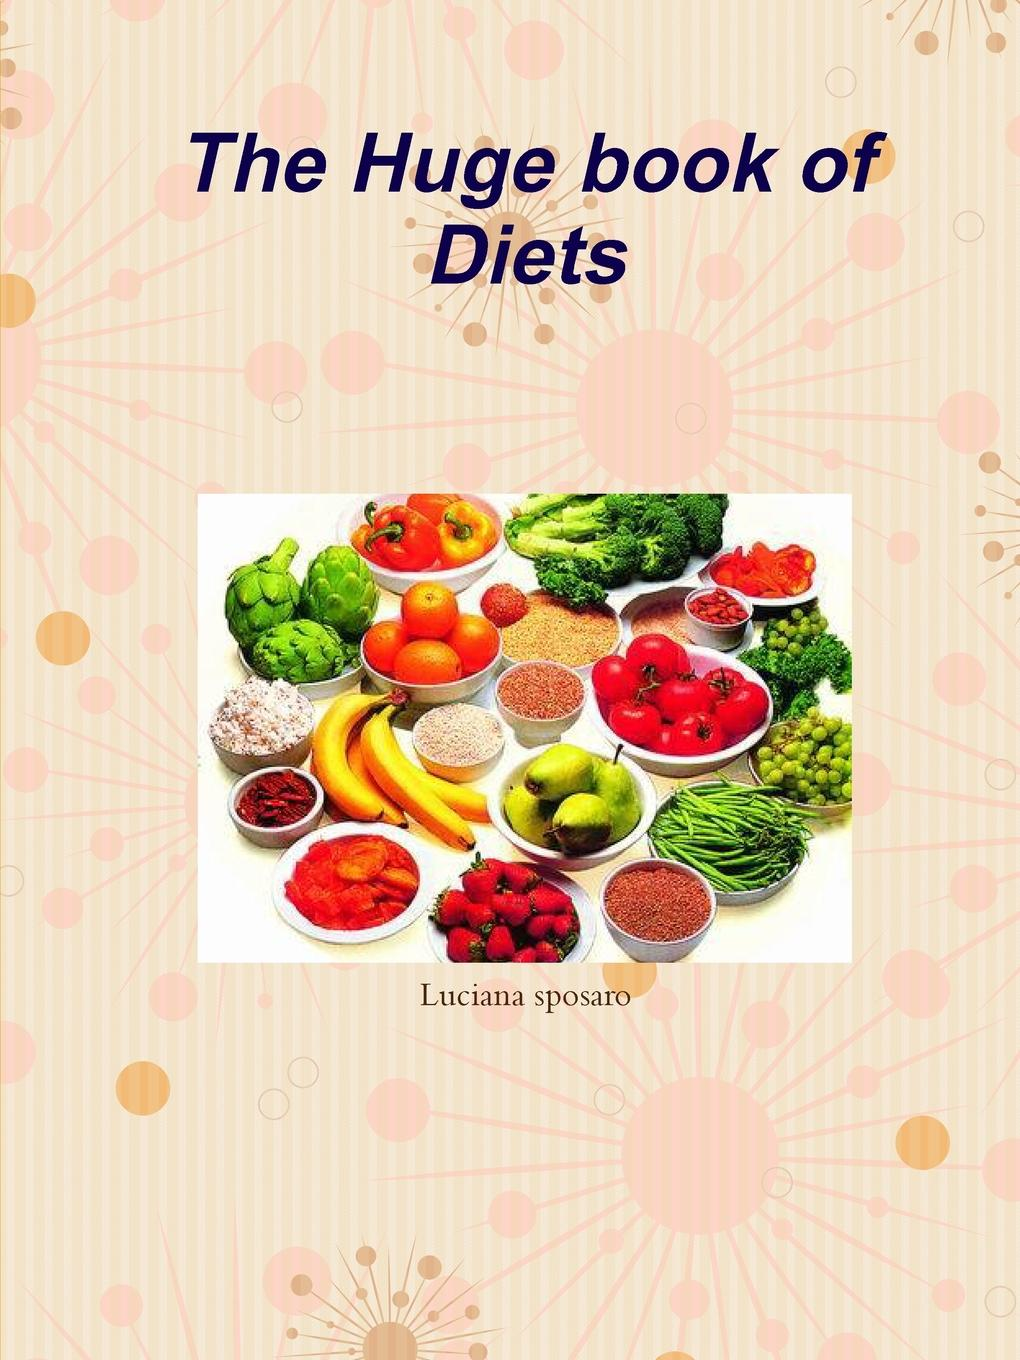 Luciana sposaro The Huge book of Diets why diets fail